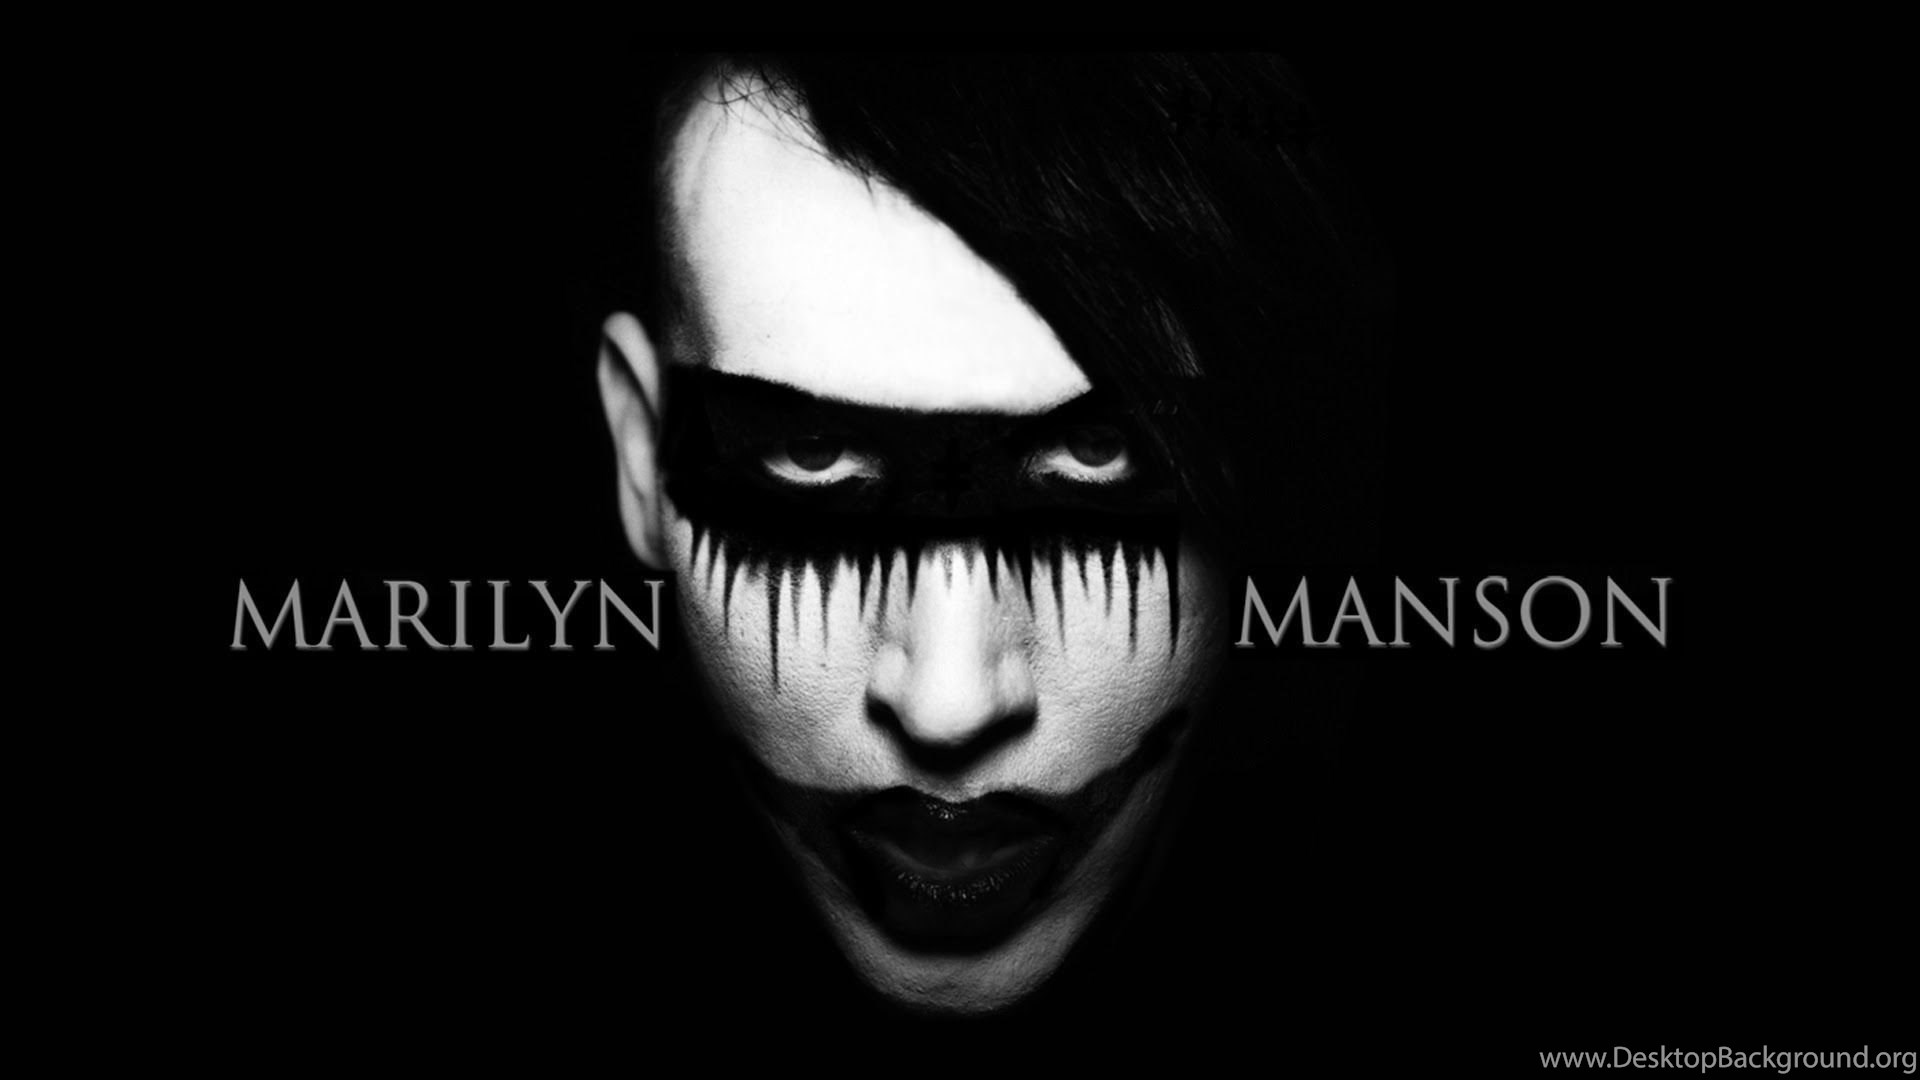 Hd Quality Marilyn Manson Wallpapers Widescreen 17 Music Celebrity